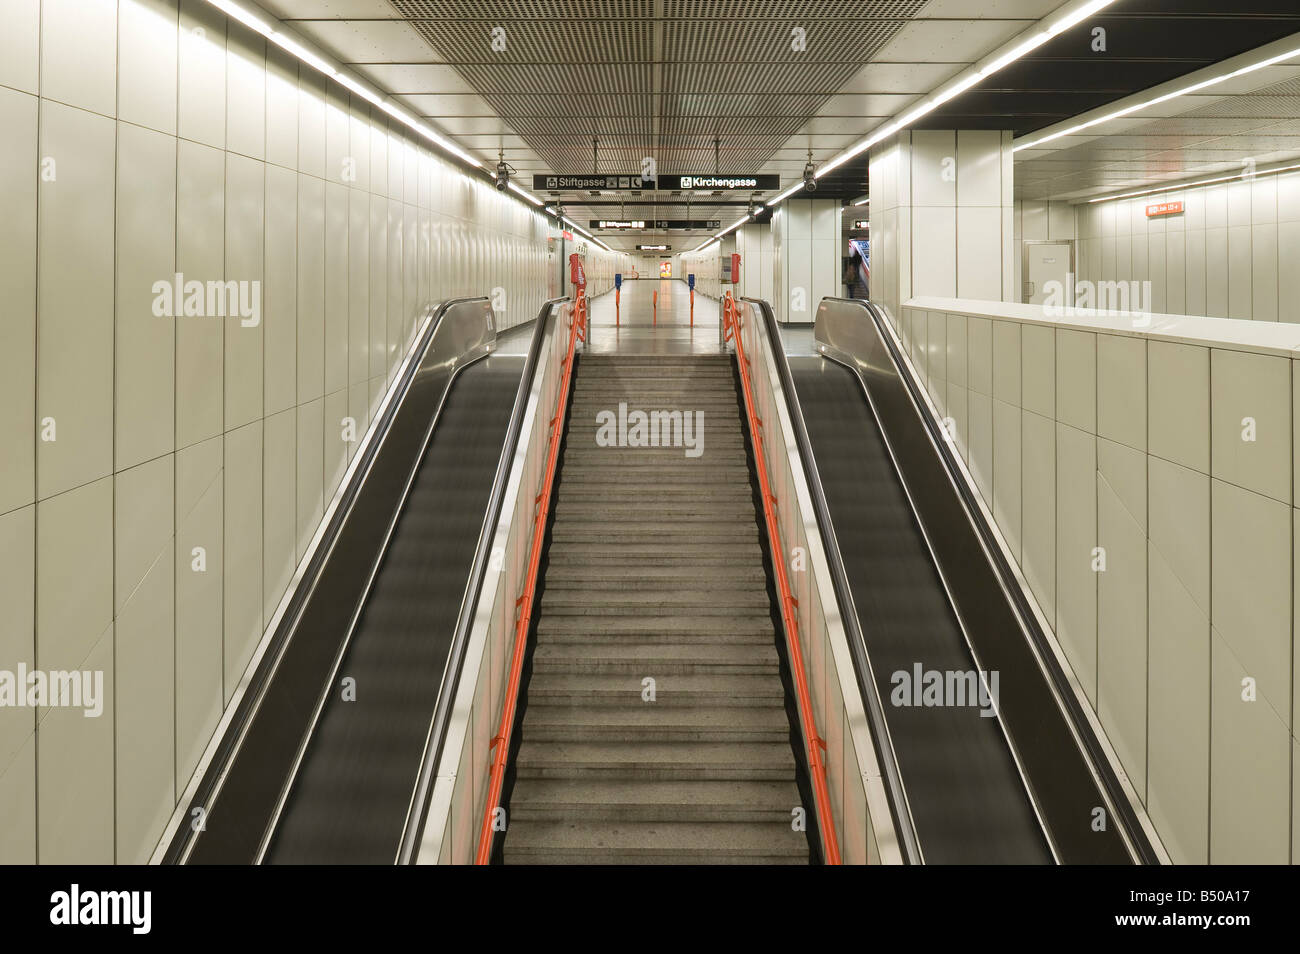 Vienna Underground Line U3 Station Neubaugasse Stock Photo 20291523